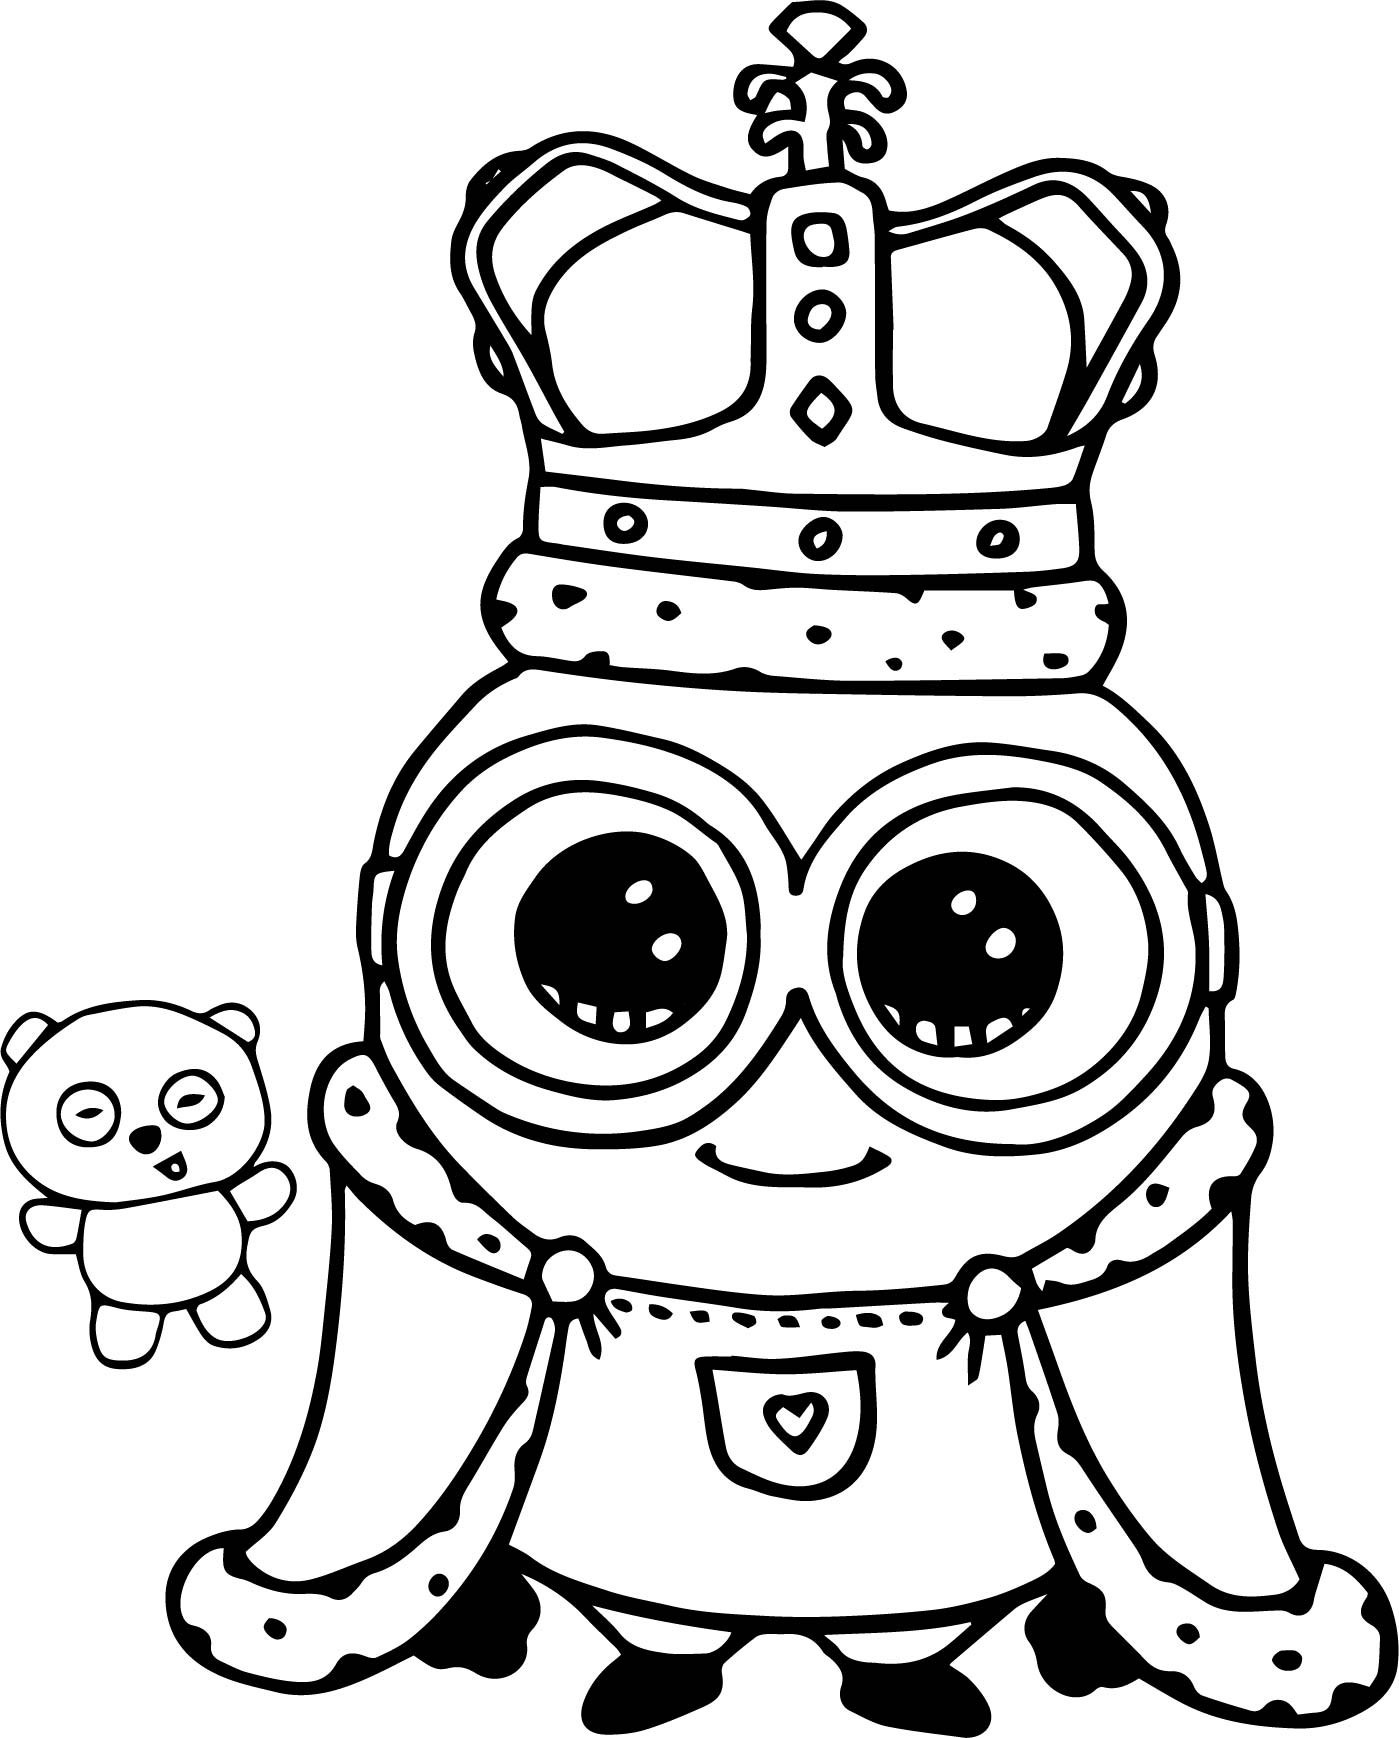 disney cute easy coloring pages how to draw chibi pocahontas by dawn with images chibi disney cute coloring easy pages